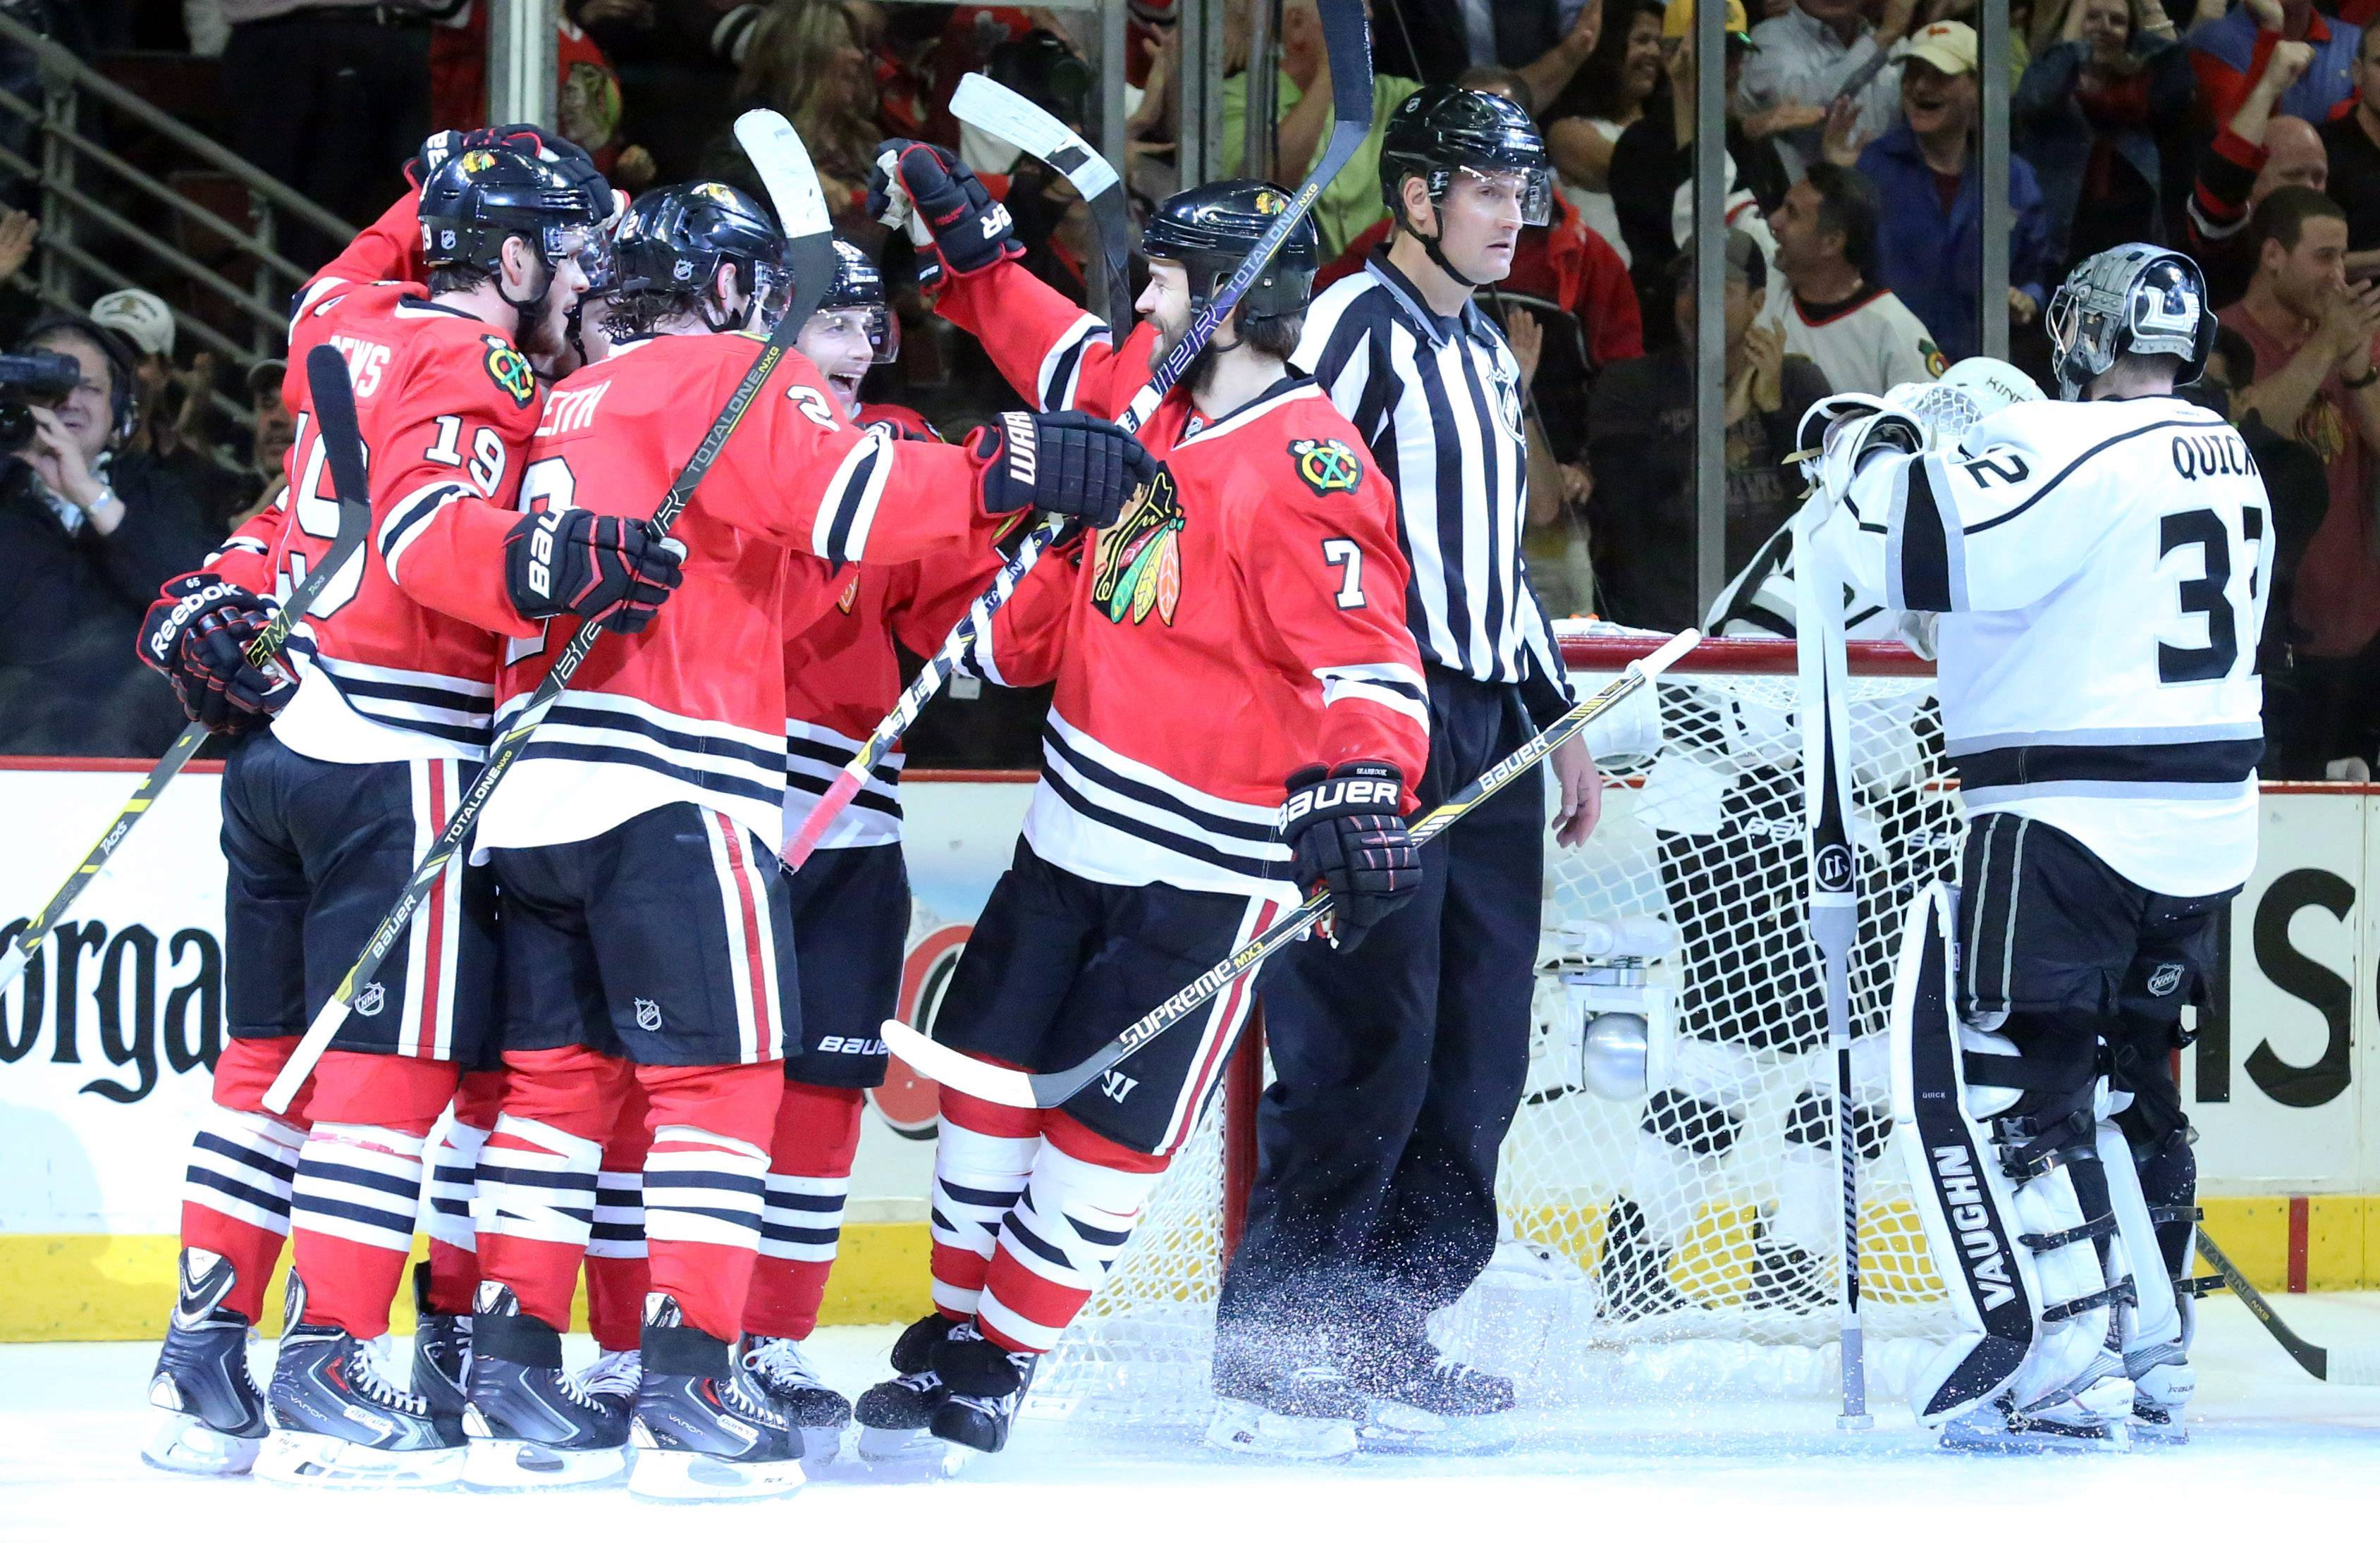 Chicago Blackhawks celebrate a goal by center Jonathan Toews in the first period in Game 7 of the Western Conference finals Sunday at the United Center in Chicago.